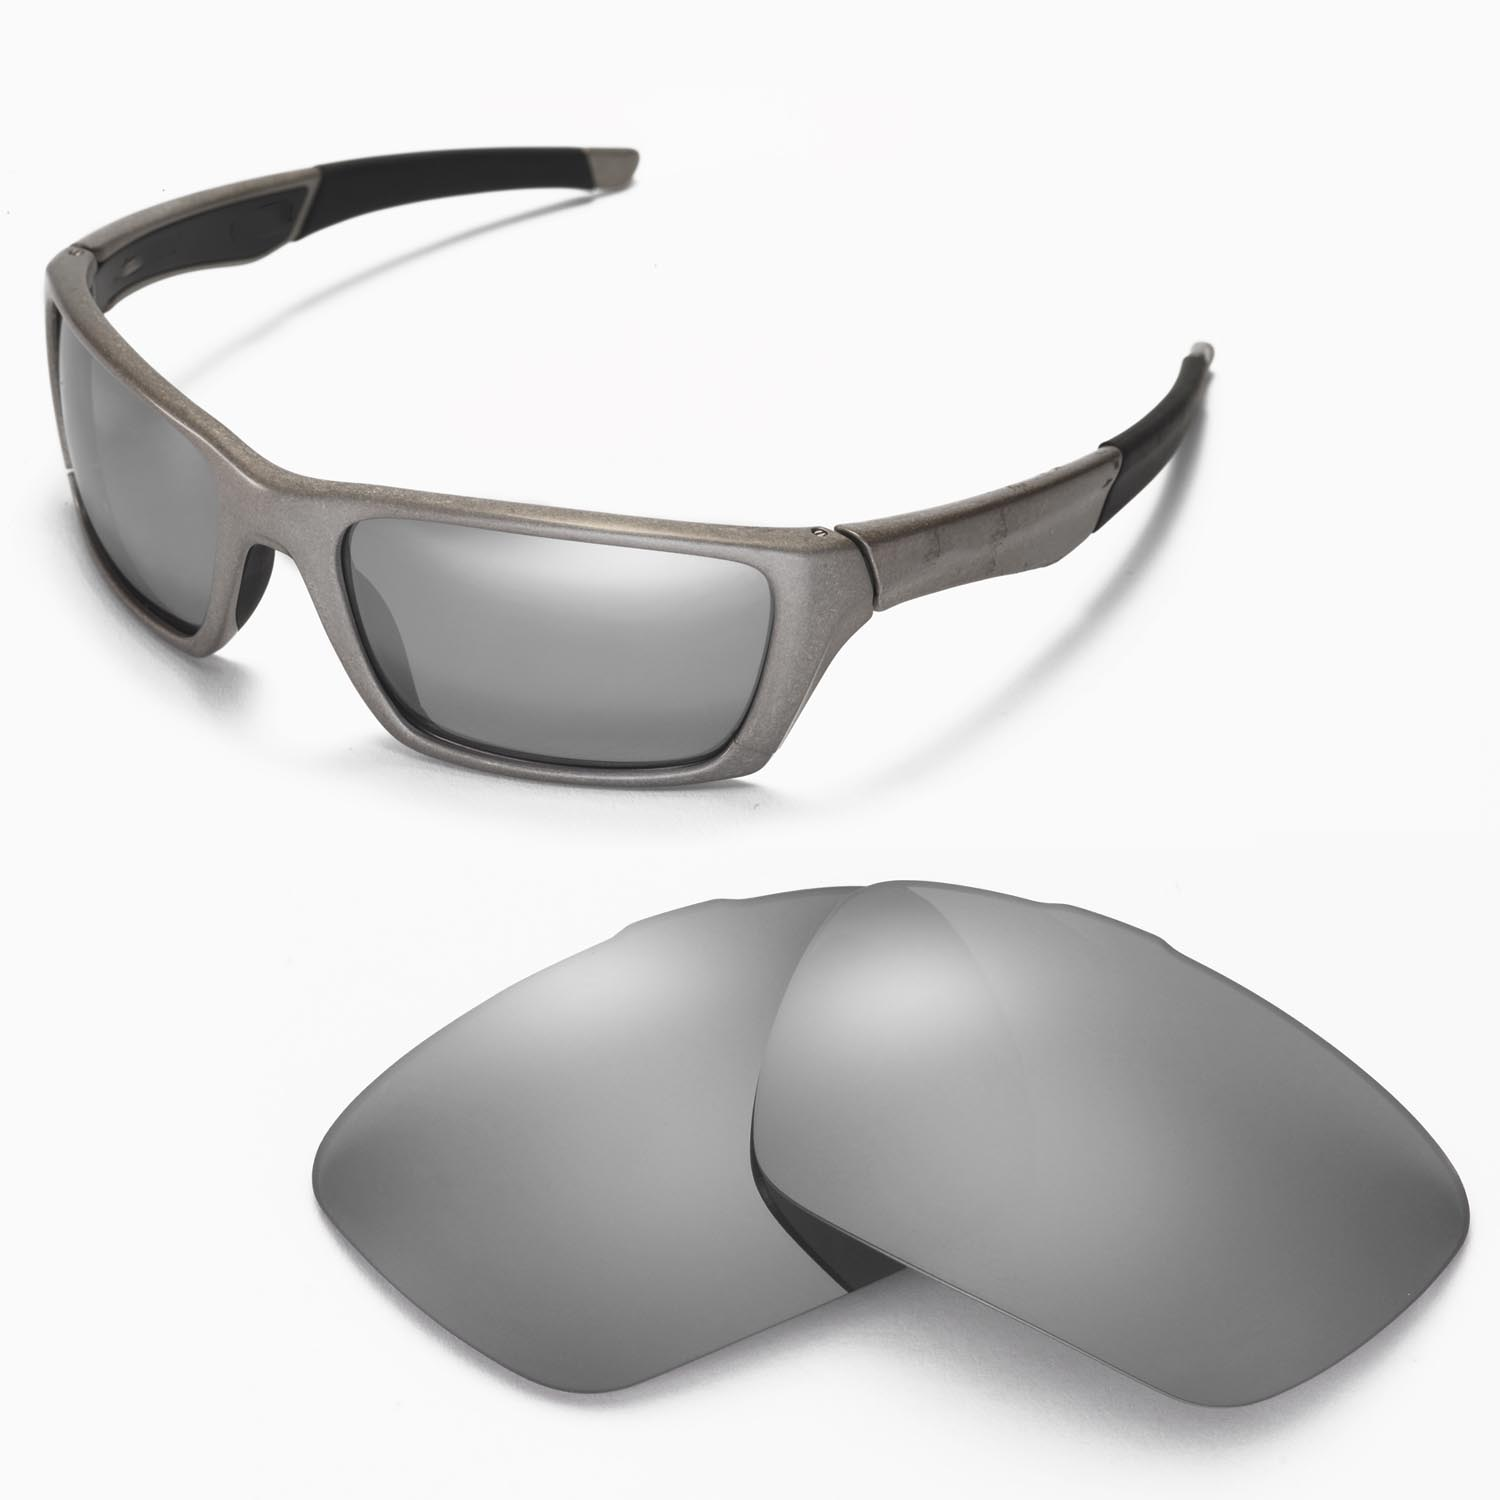 270f8c8b28 Details about New Walleva Polarized Titanium Replacement Lenses For Oakley  Jury Sunglasses